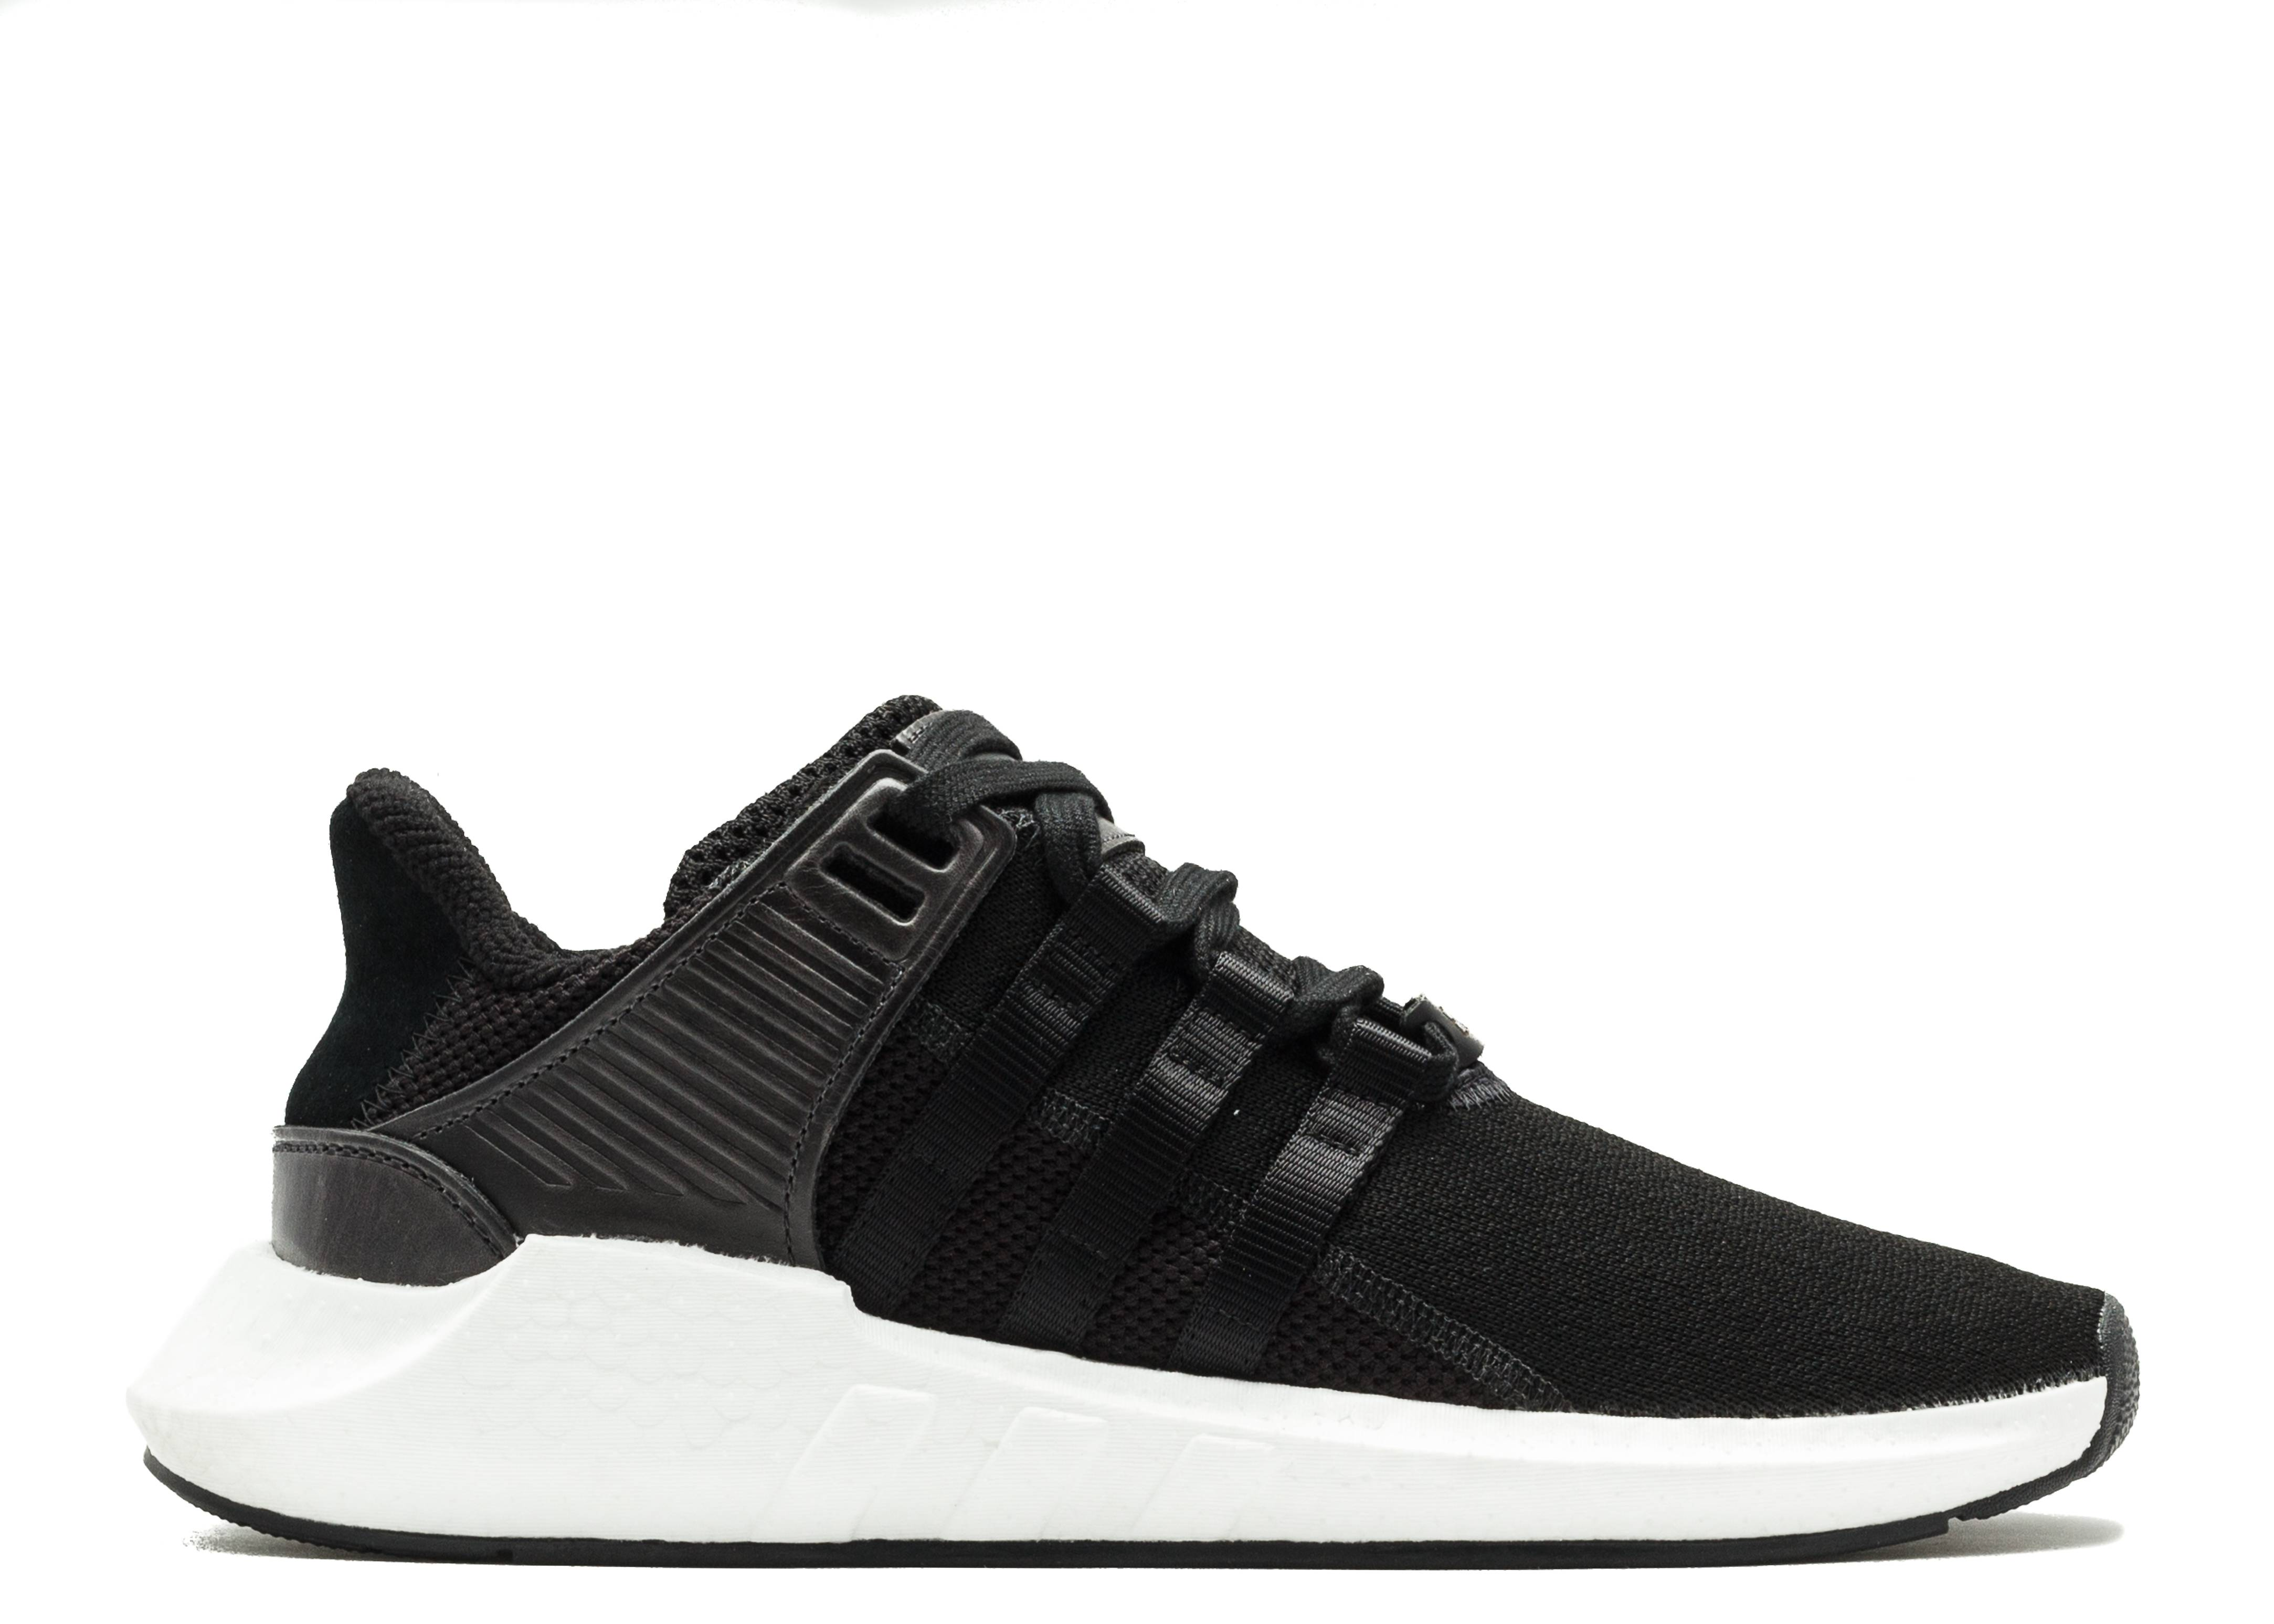 discount in China adidas Originals EQT Support 93/17 Trainers In Black BB1236 clearance free shipping 100% original cheap online discount low shipping fee the cheapest online JmjjC